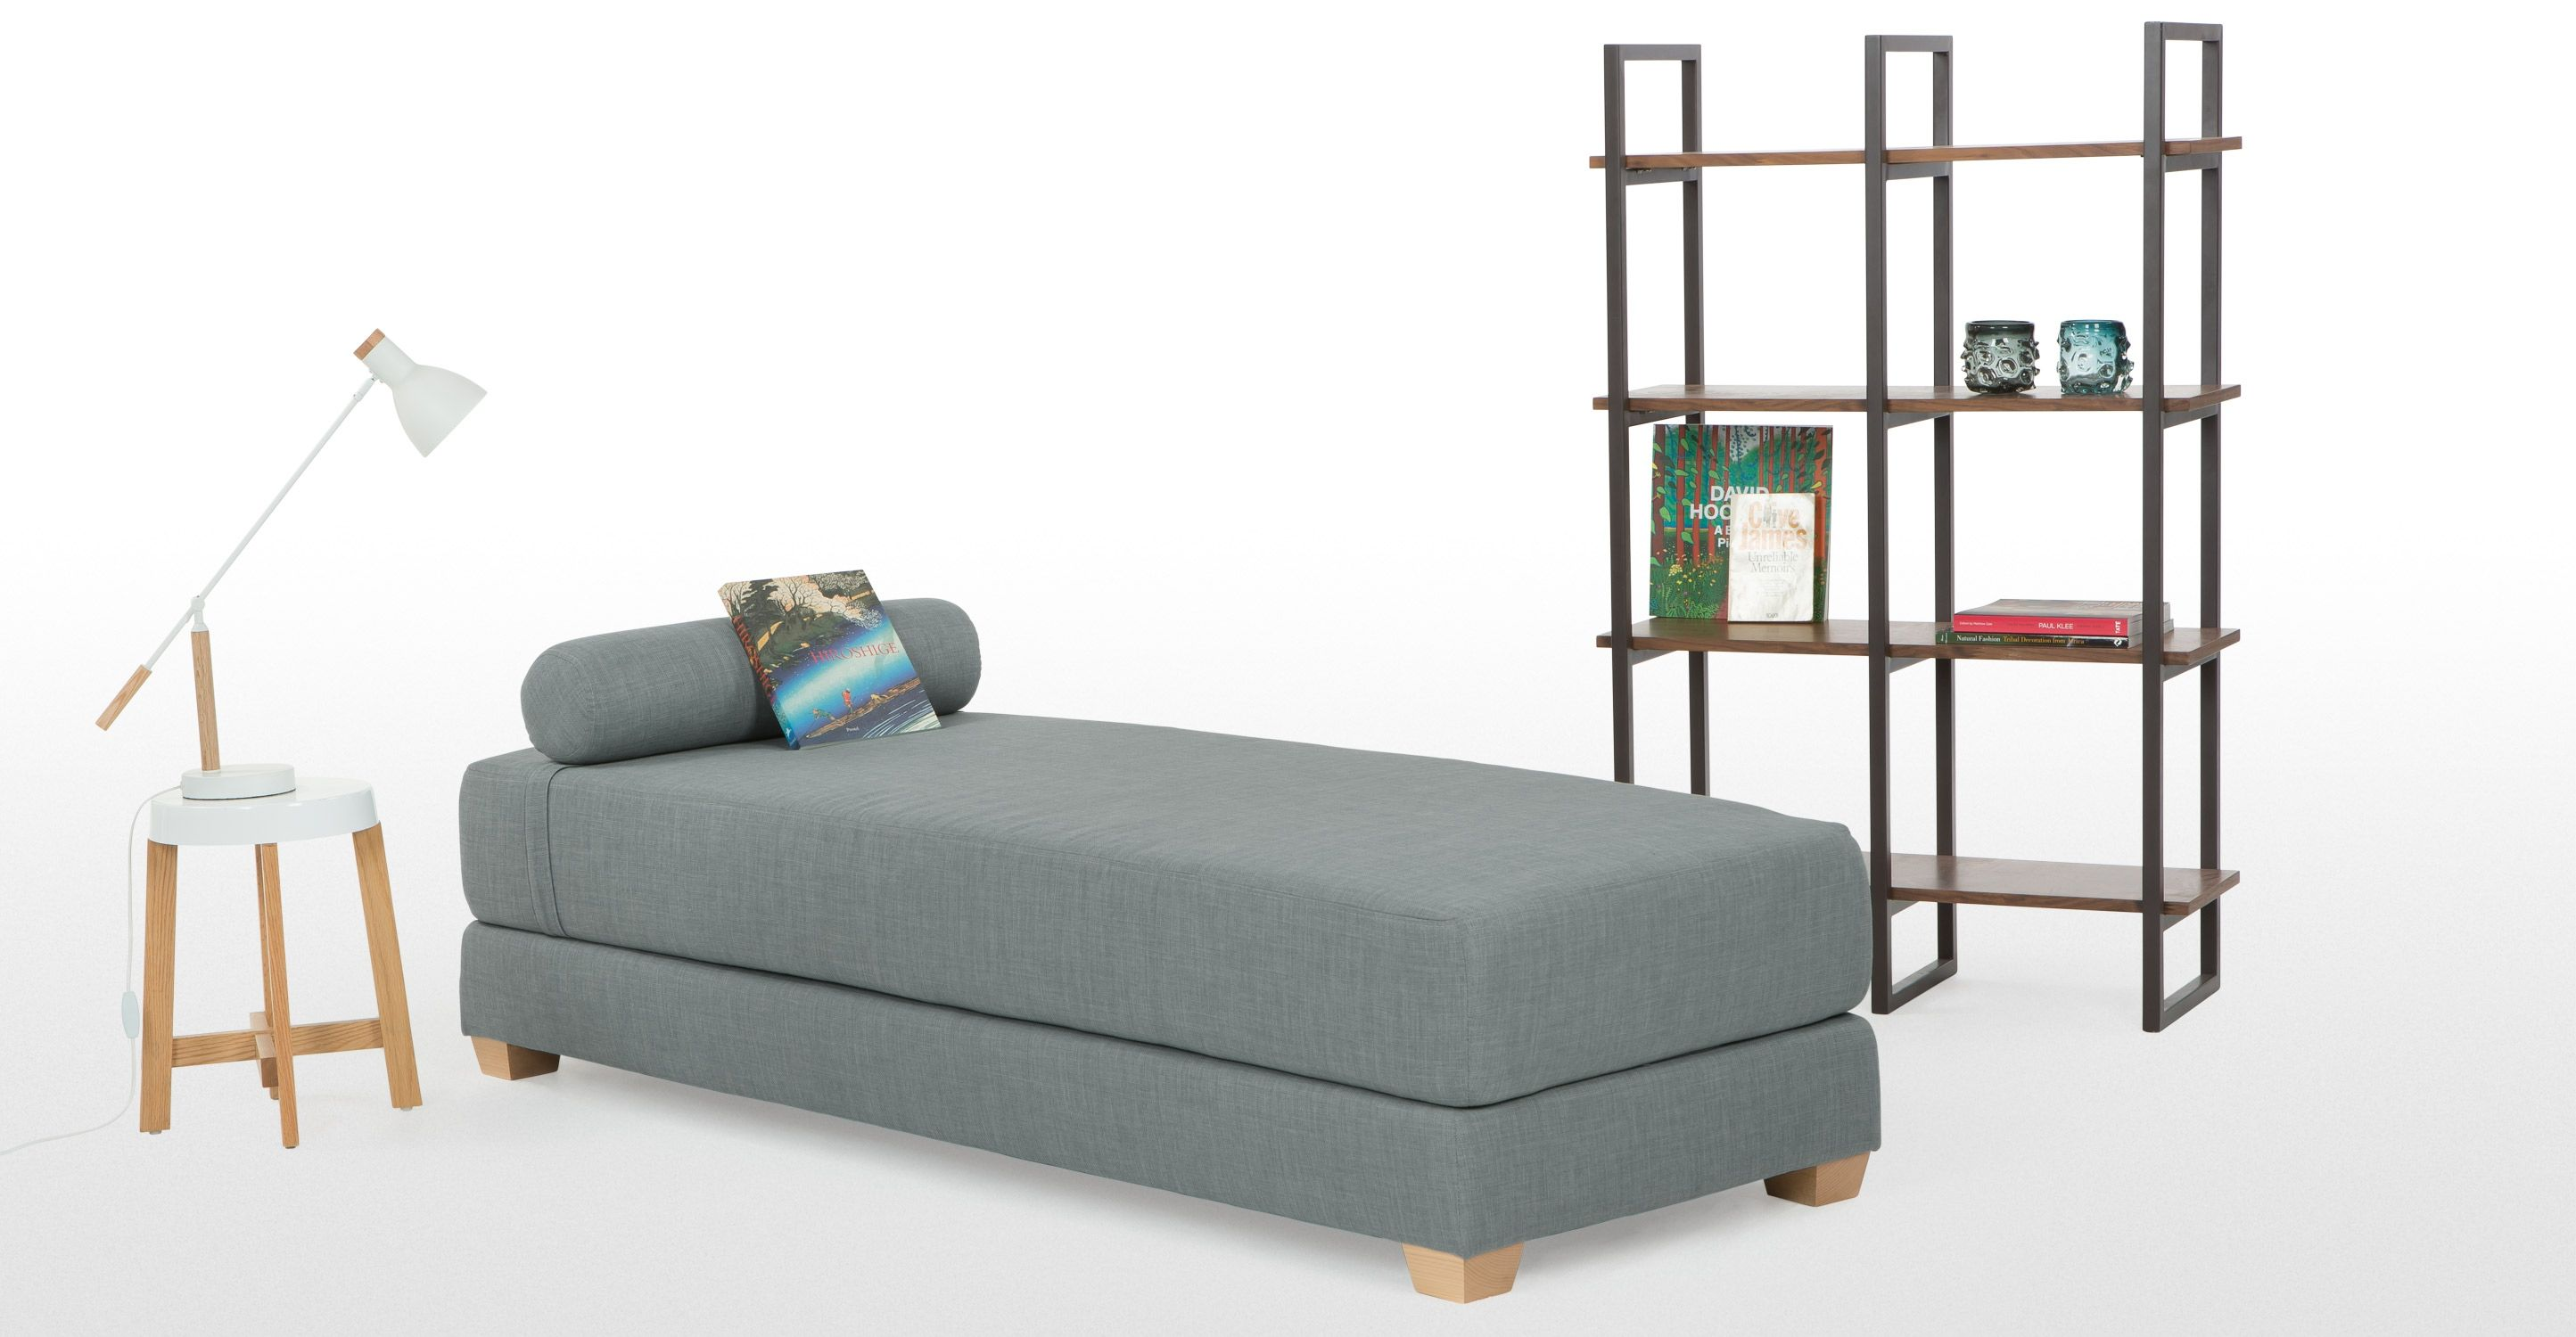 Romy Day Bed in Venetian blue made Furniture